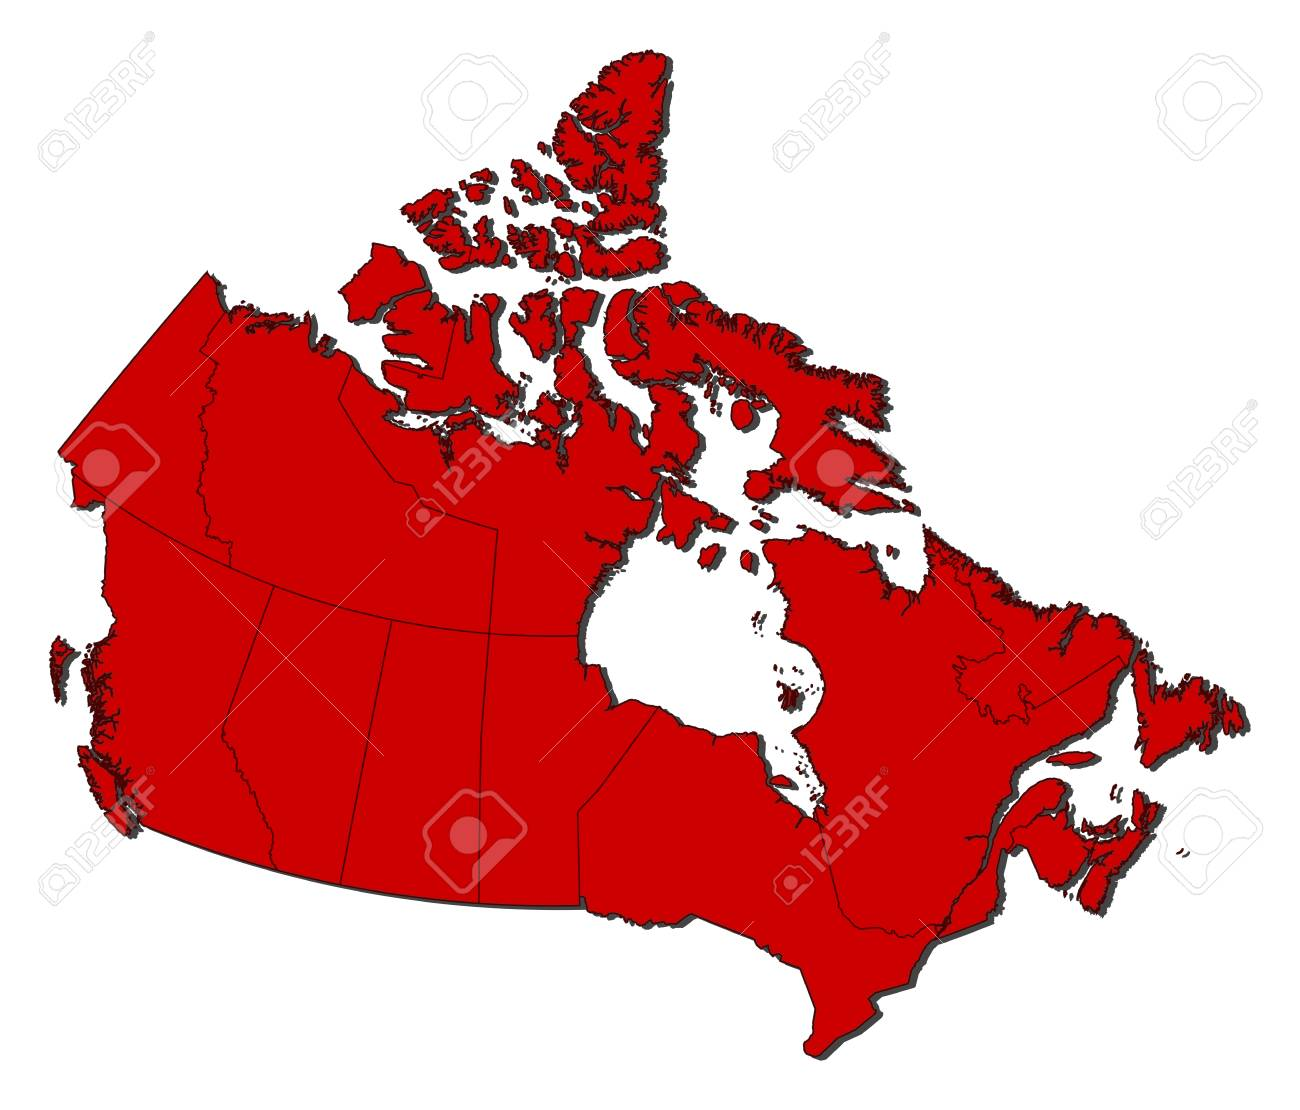 Map Of Canada Red.Map Of Canada With The Provinces Colored In Red